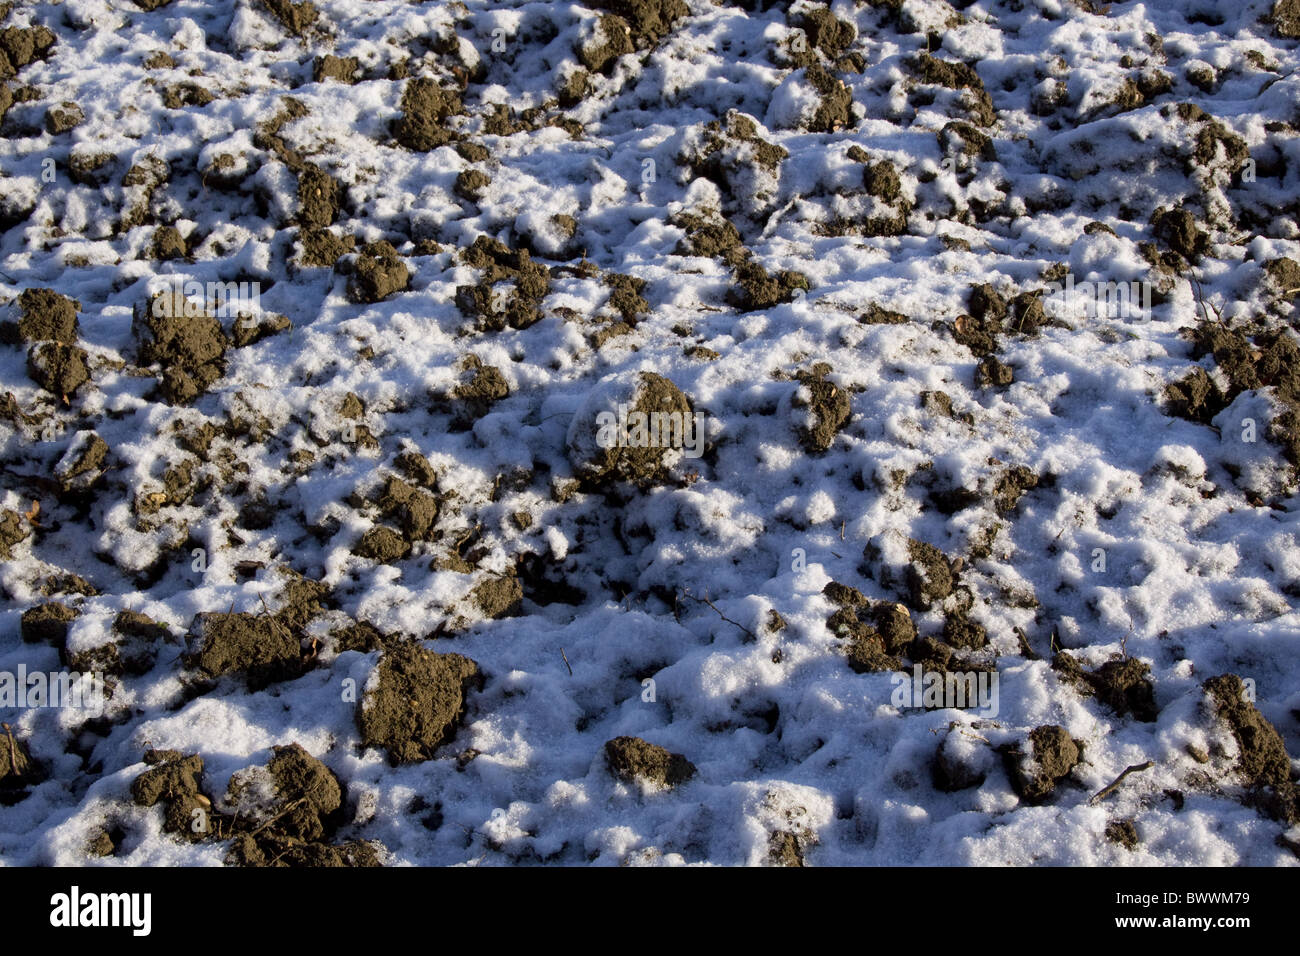 Freshly turned earth with snow - Stock Image